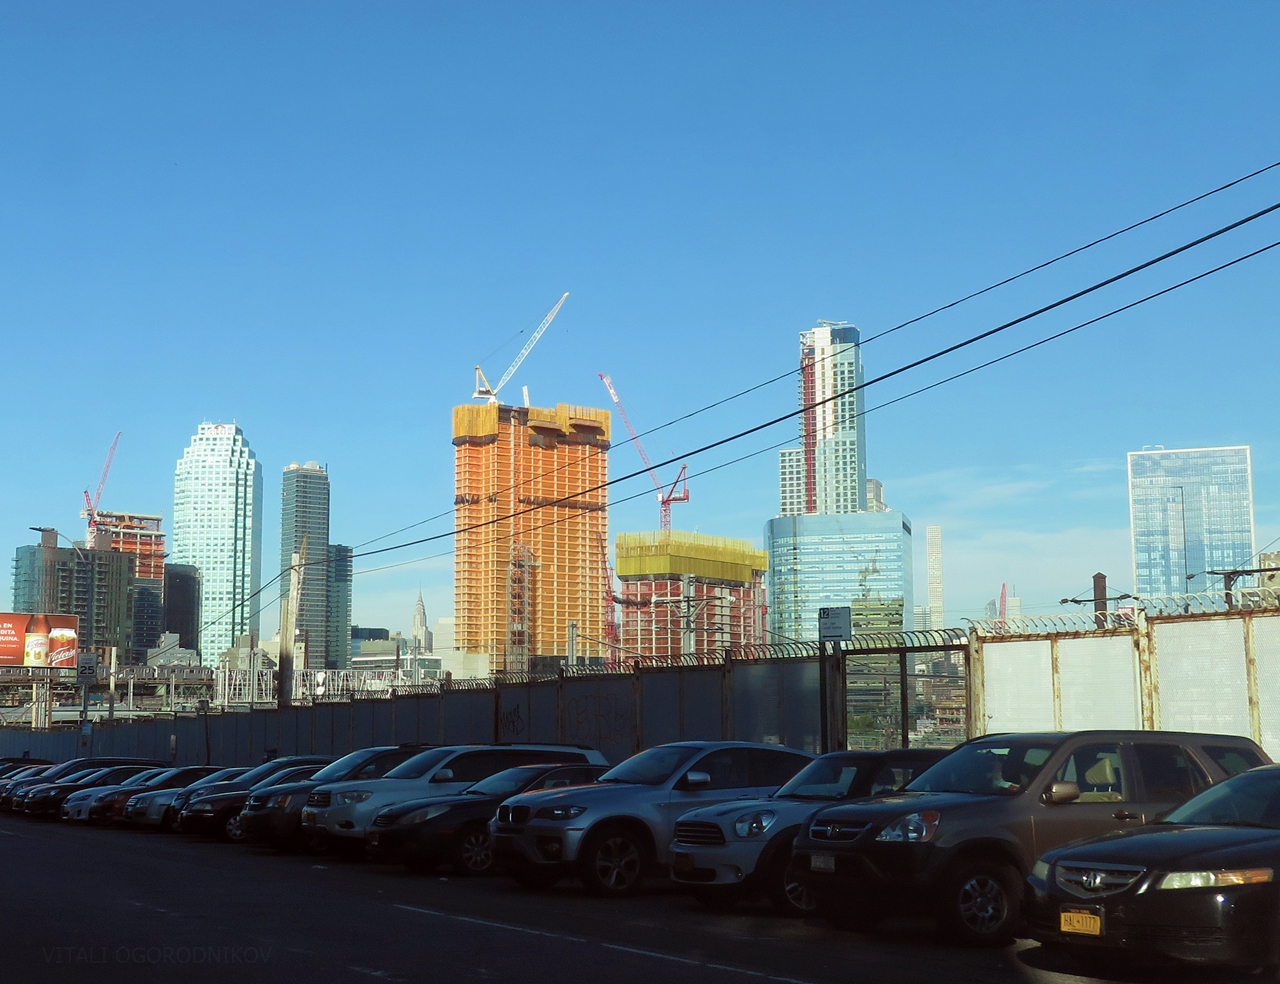 Looking west, with the 28-10 Jackson Avenue complex under construction in the center